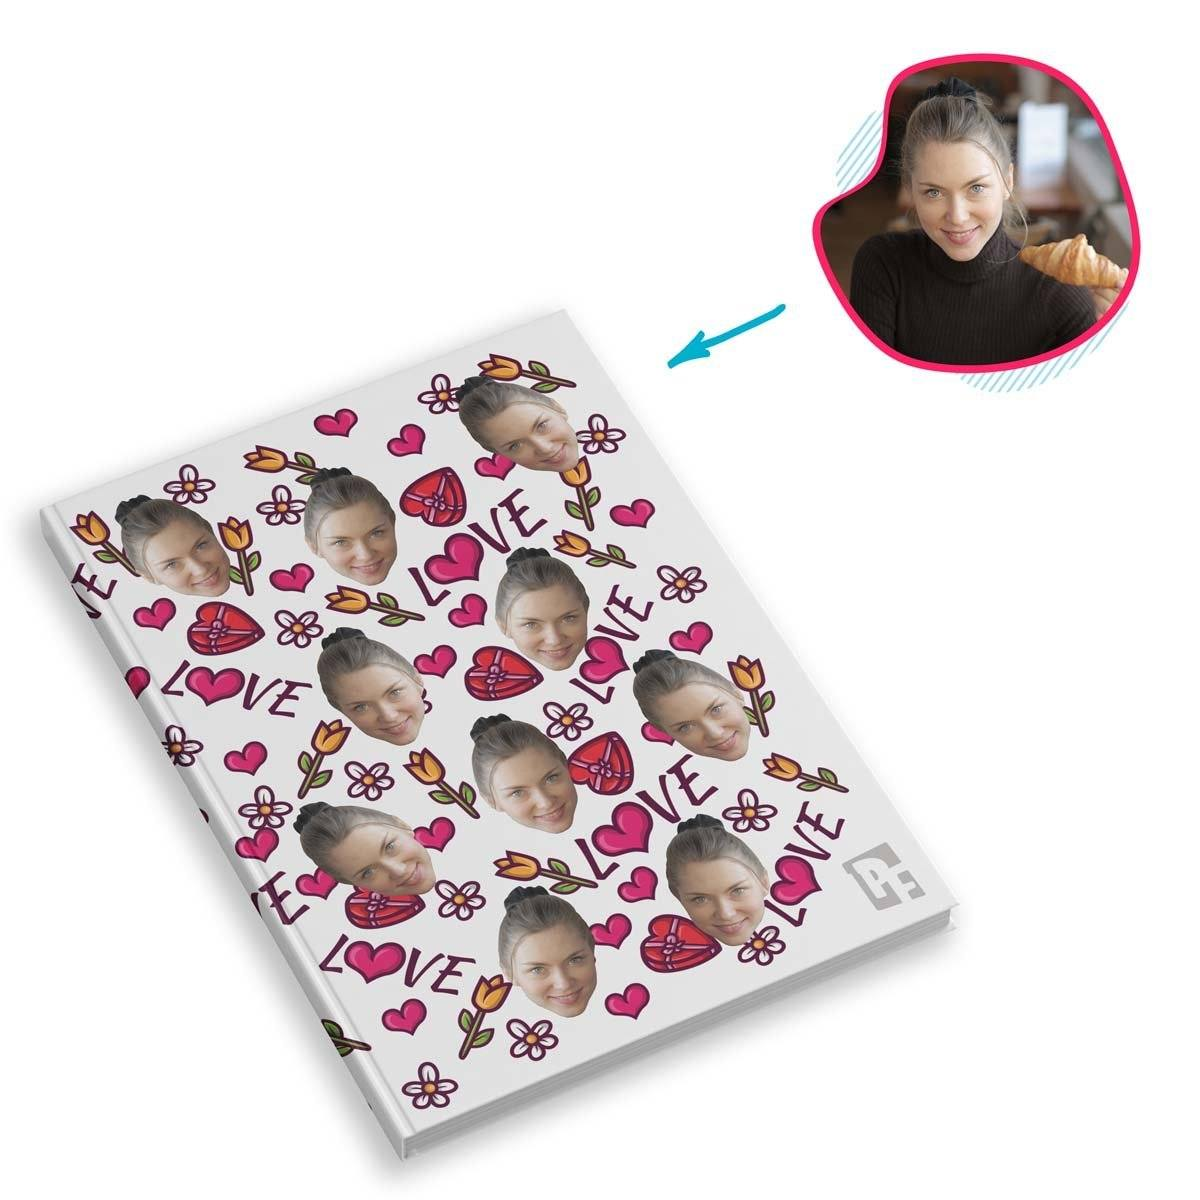 white Hearts and Flowers Notebook personalized with photo of face printed on them